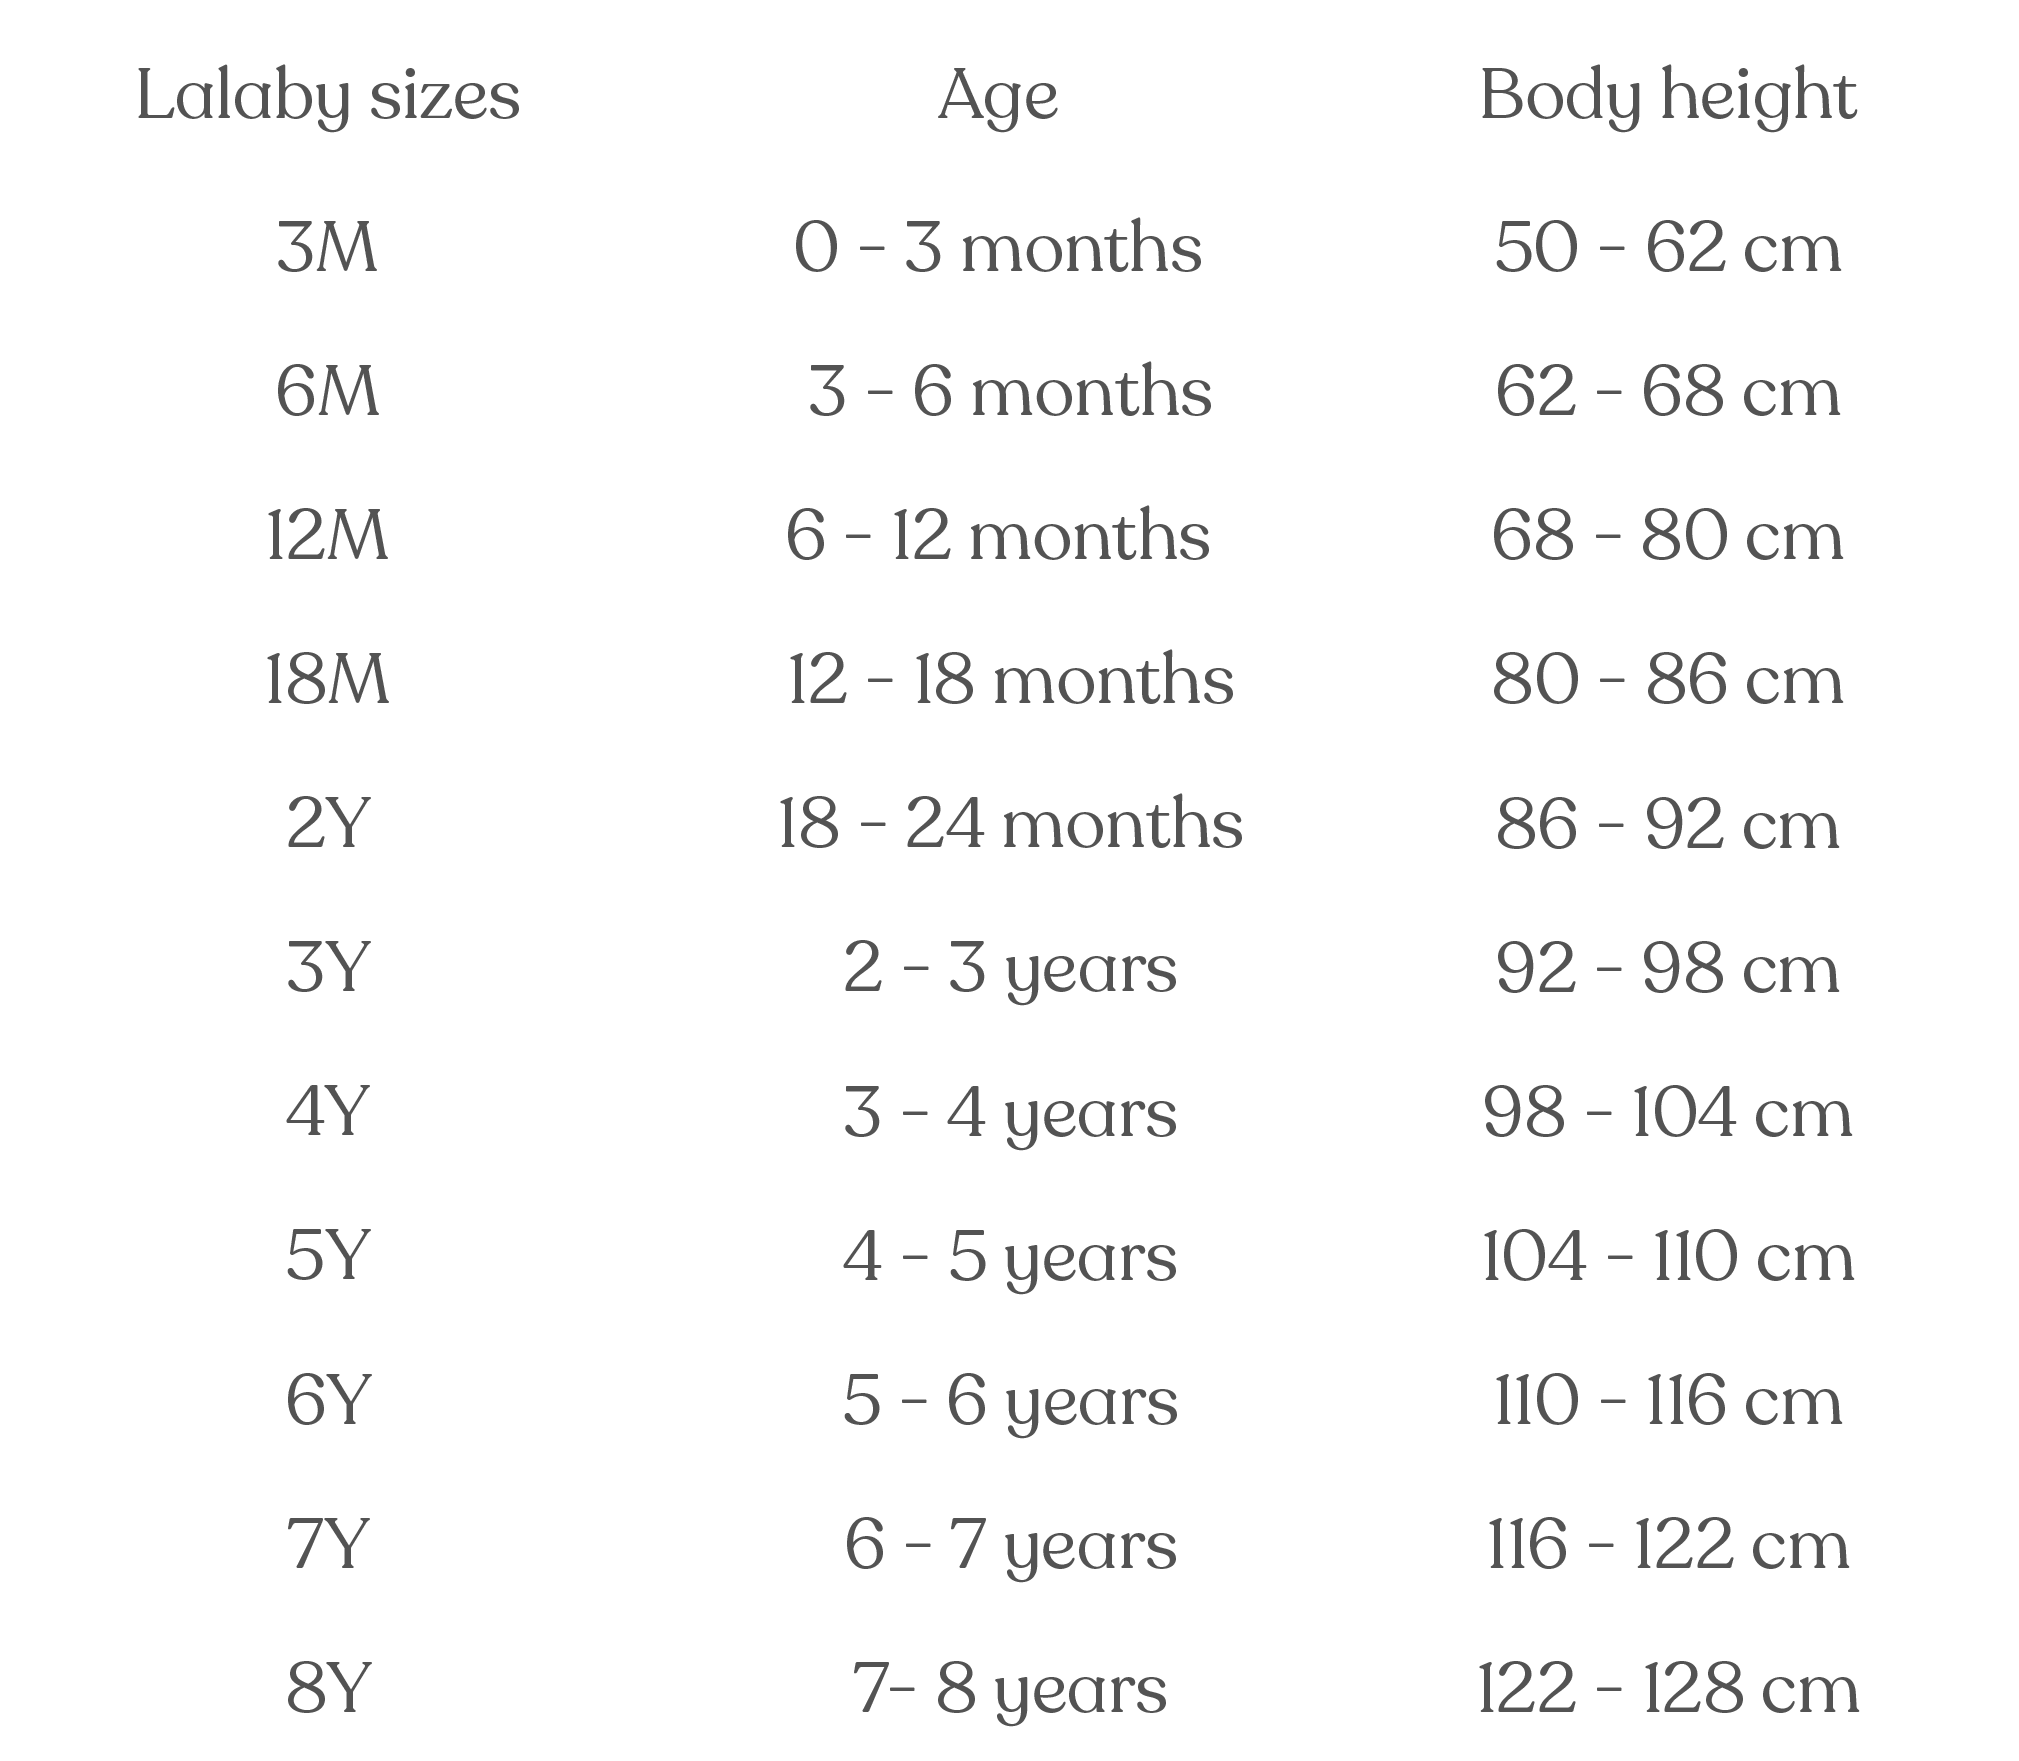 Lalaby size guide